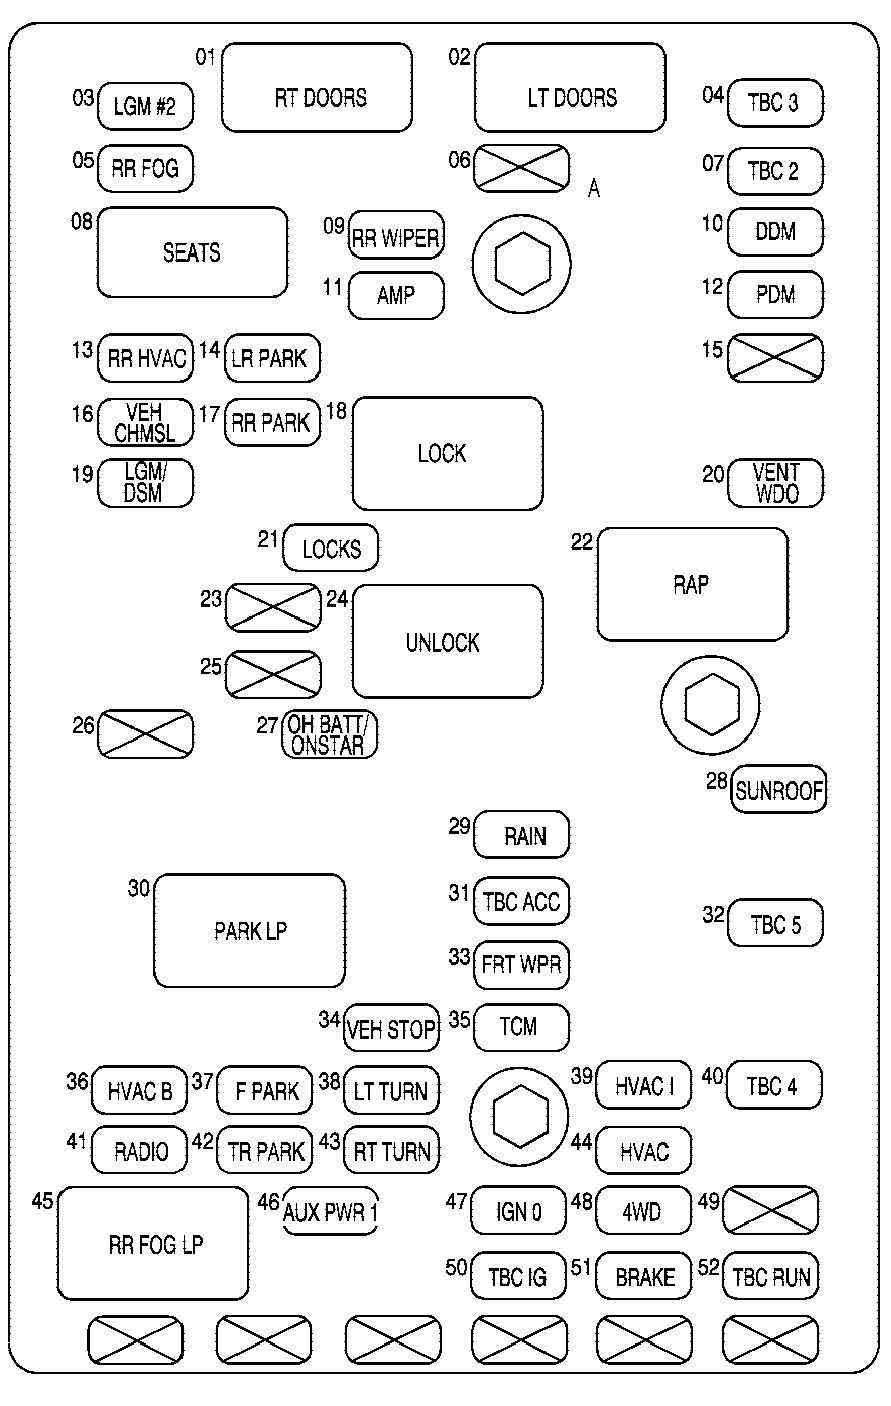 2006 Trailblazer Fuse Box Diagram. Parts. Wiring Diagram